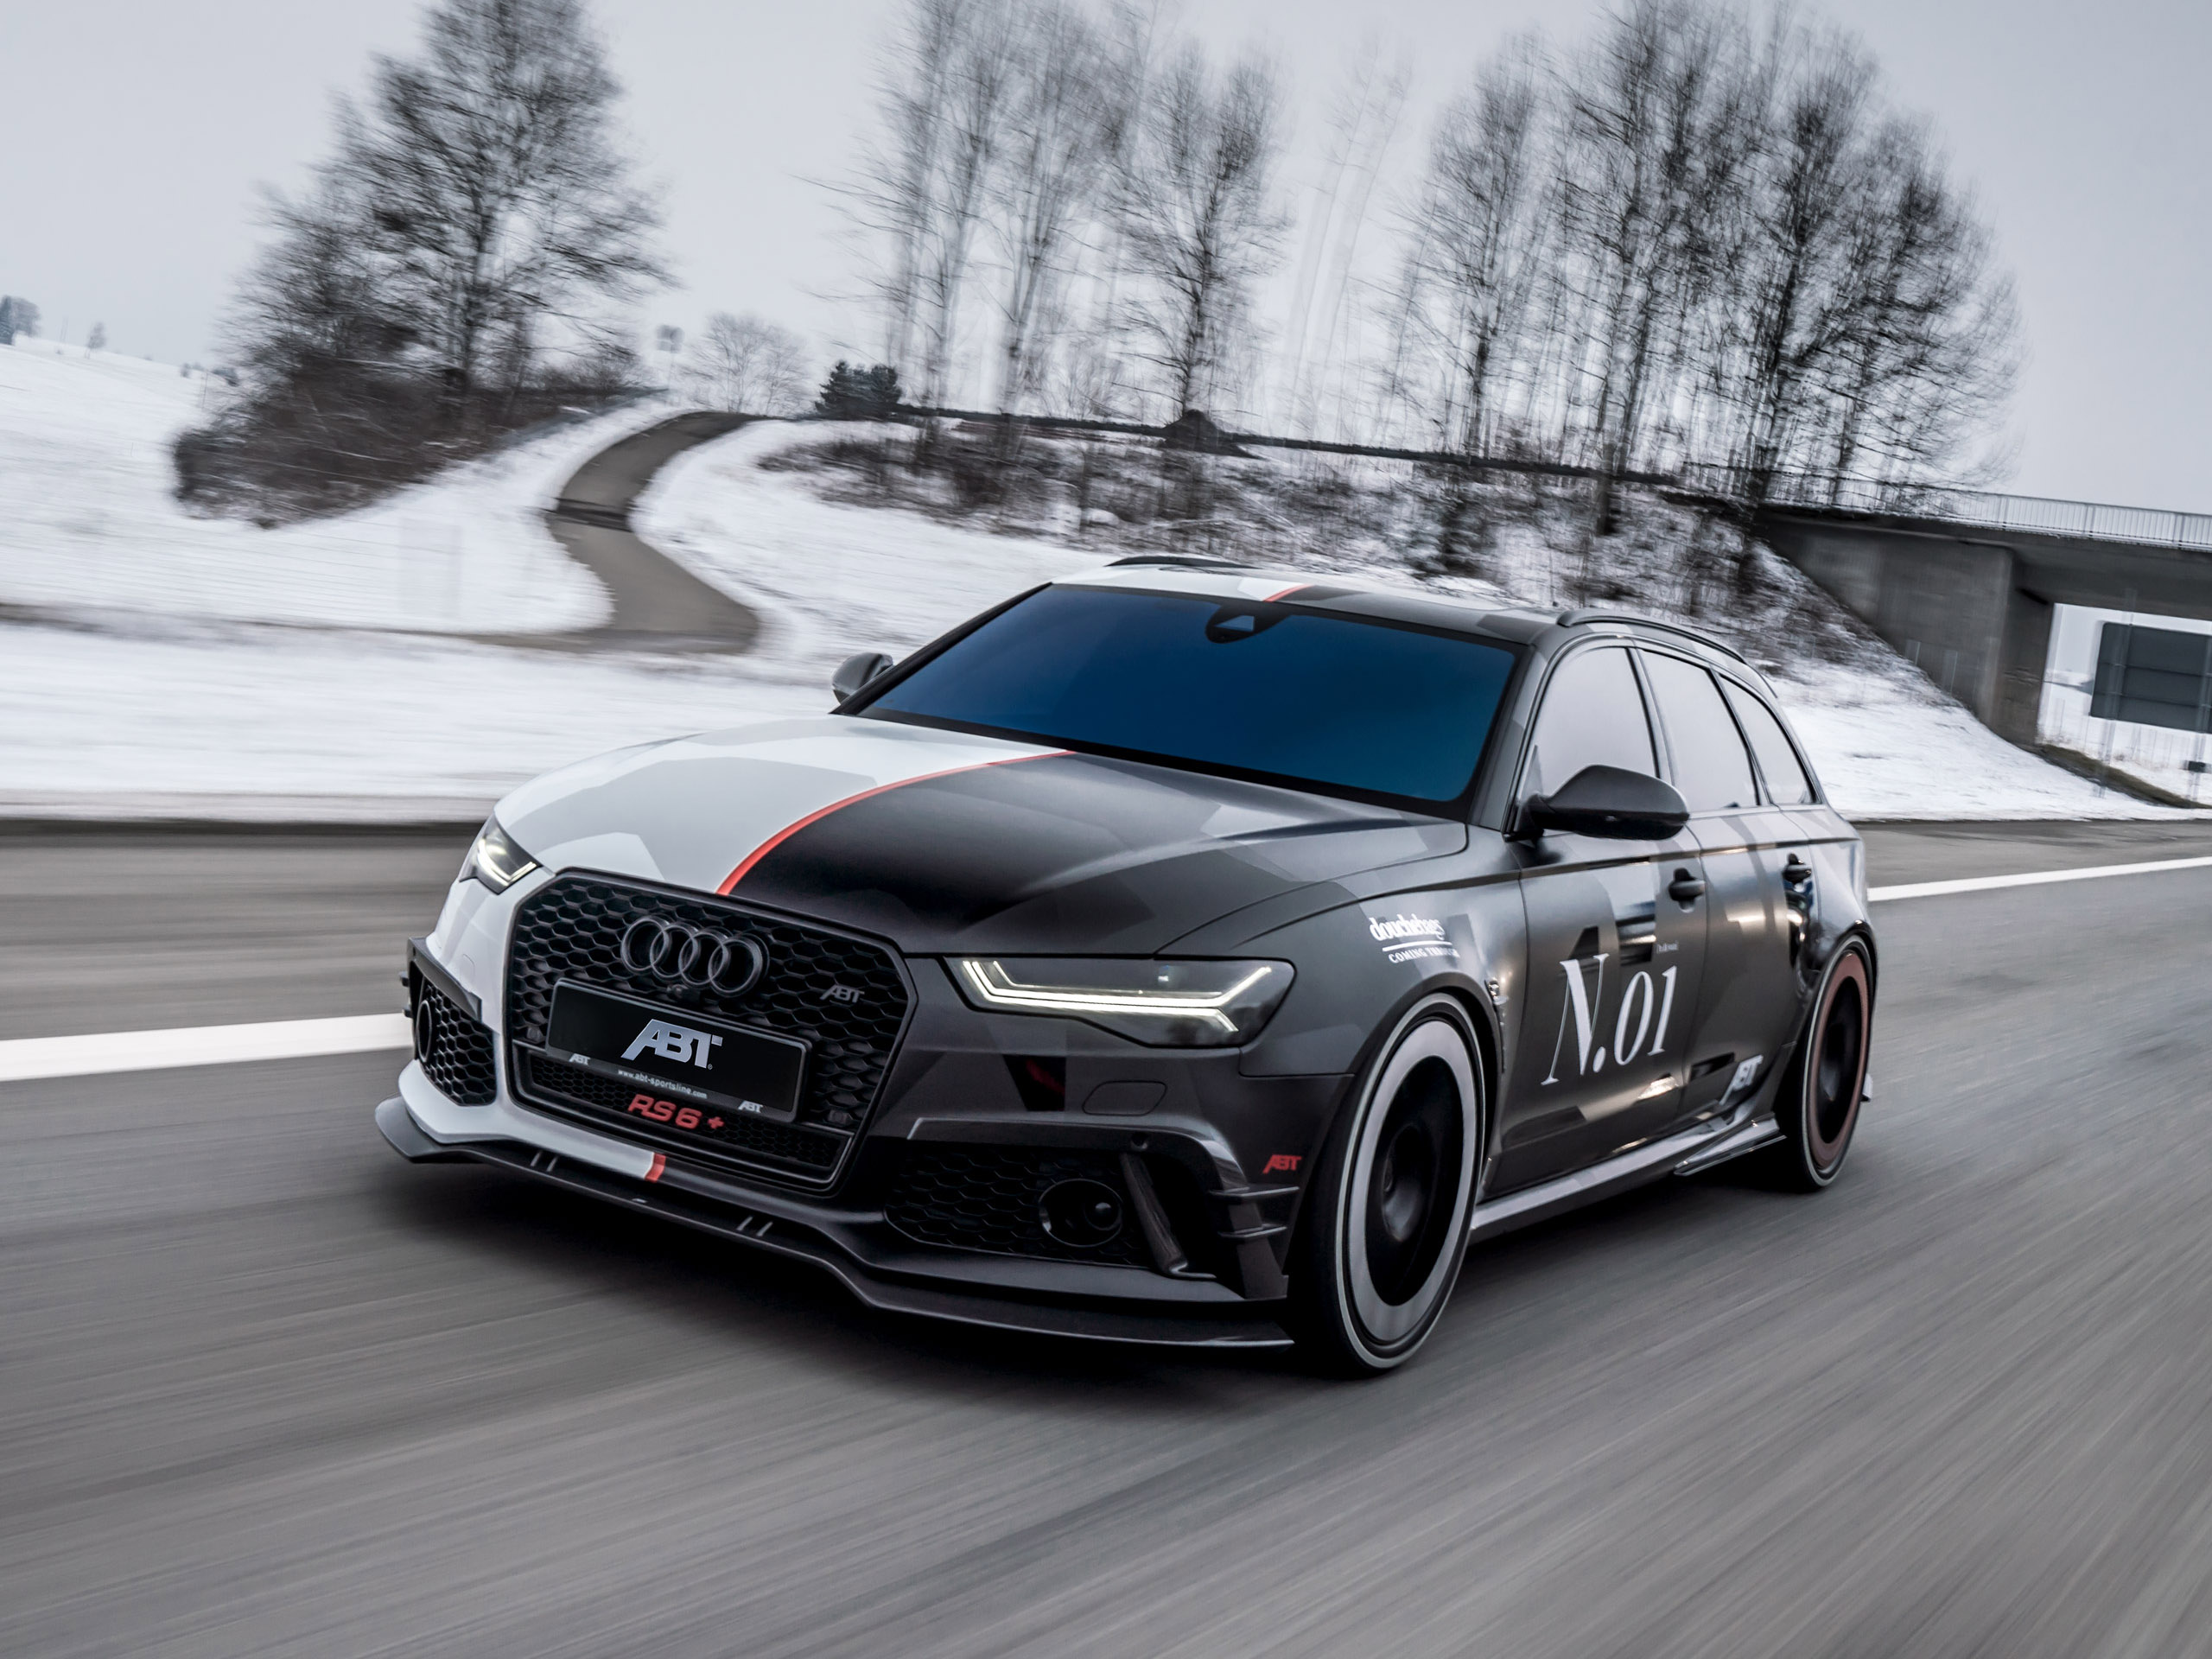 audi rs6 plus phoenix by abt 2018 de 735 chevaux pour jon olsson. Black Bedroom Furniture Sets. Home Design Ideas